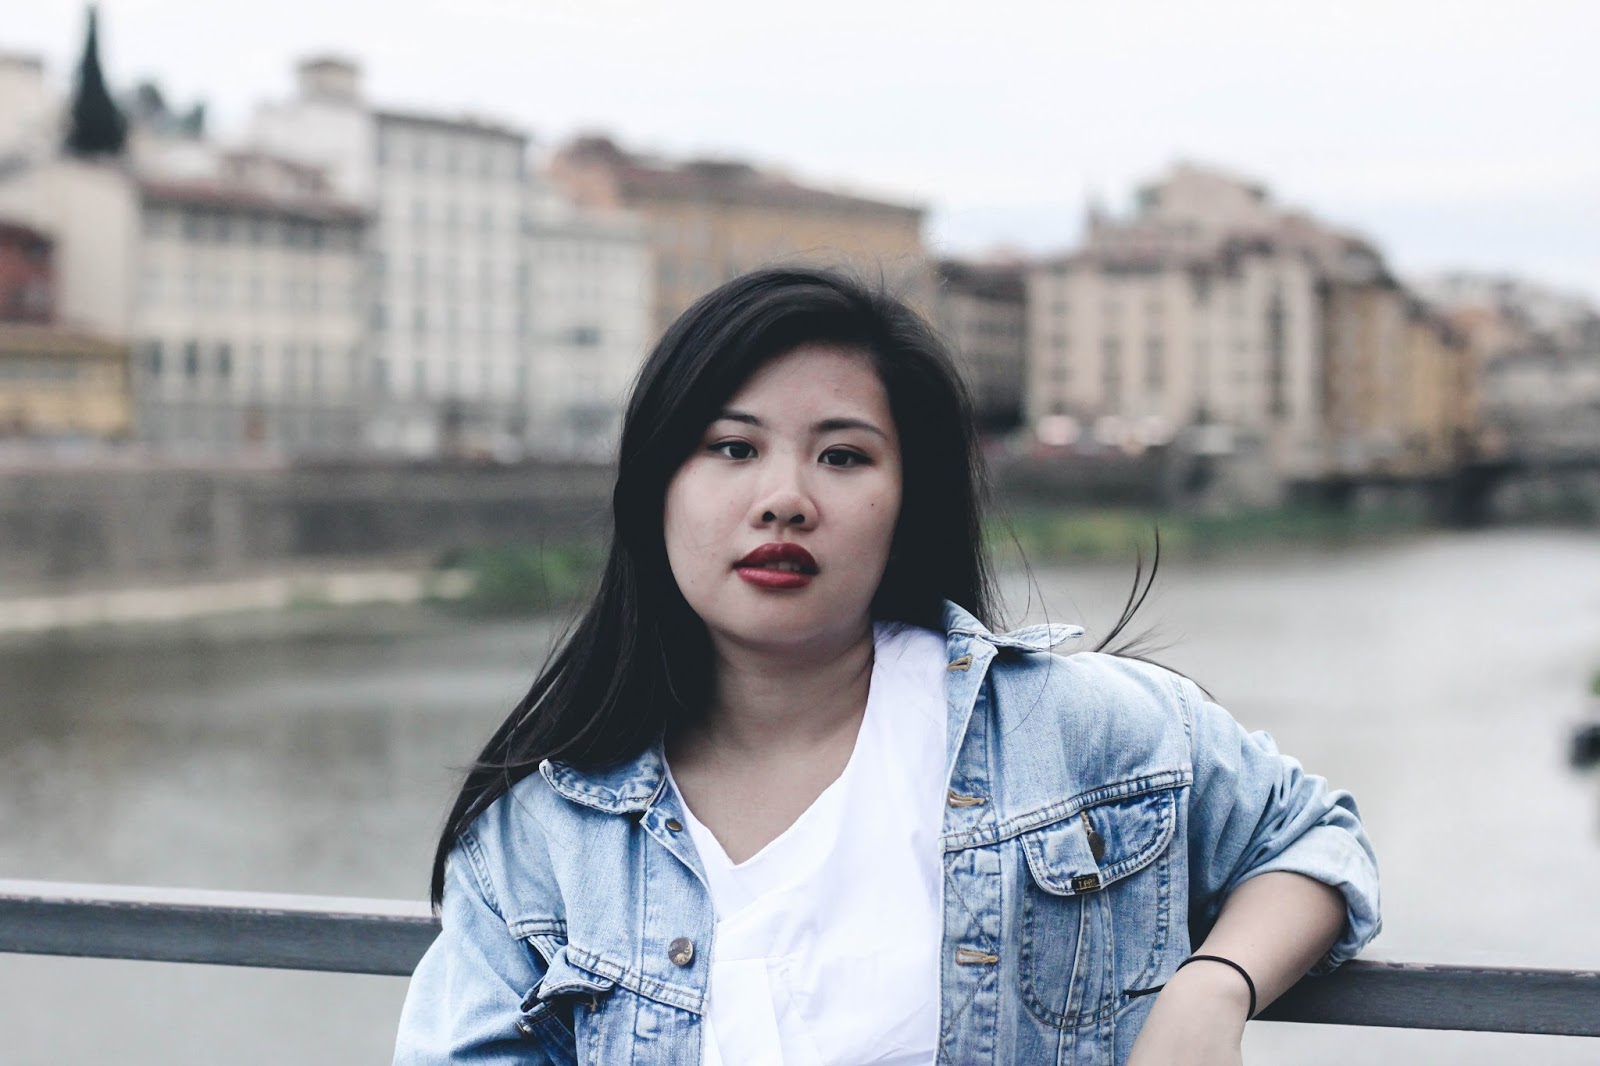 italy holiday look book street style photography ootd wiwt fashion lifestyle what to do in florence ice cream